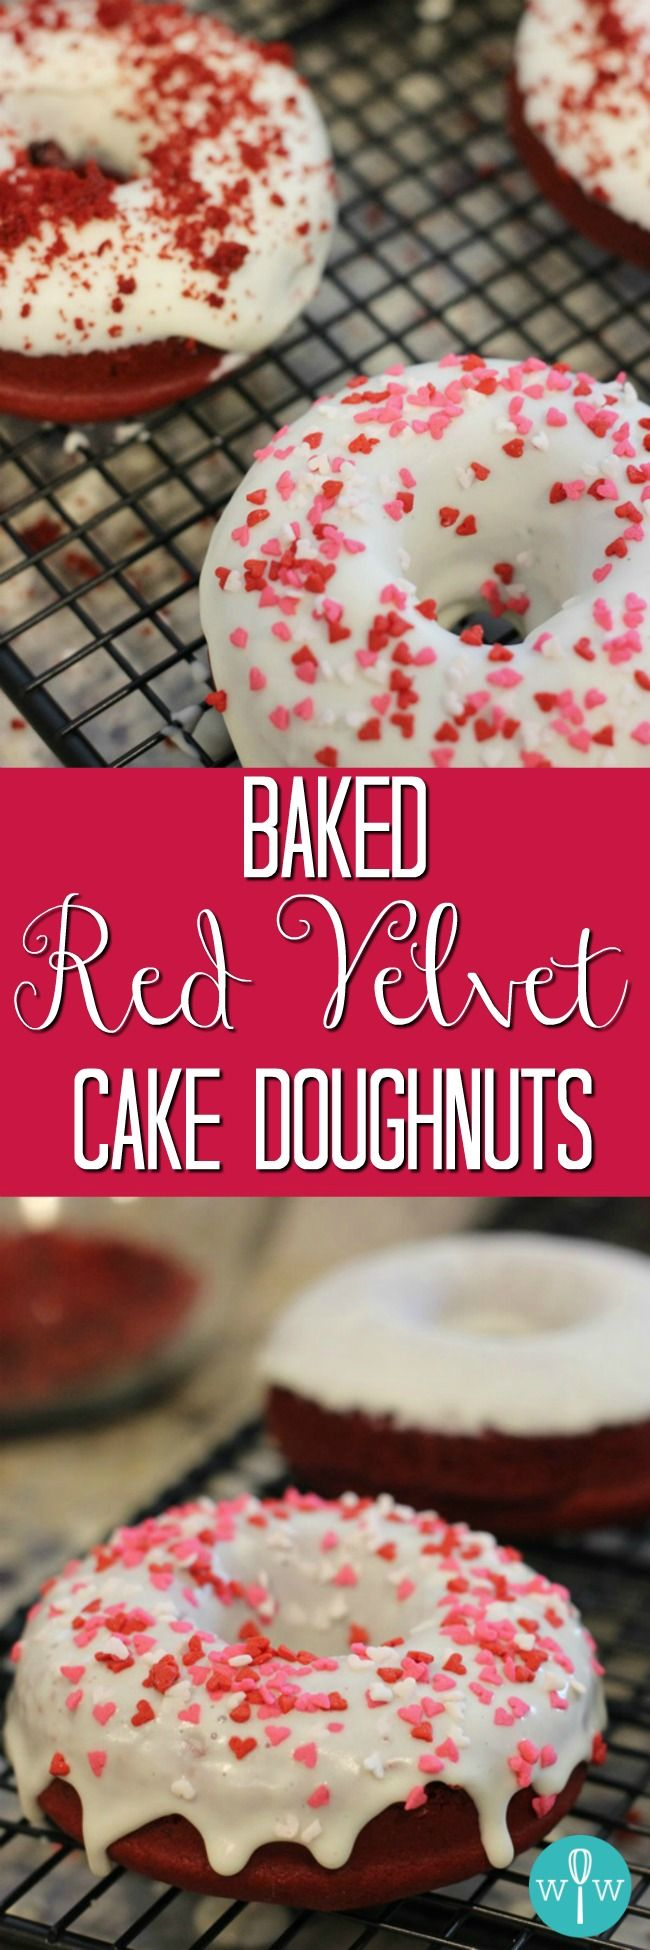 Baked Red Velvet Cake Doughnuts - A tasty baked doughnut recipe! Red velvet cake doughnuts with cream cheese icing made easy by using a cake mix and canned frosting. Indulge in pure deliciousness without the guilt! | www.worthwhisking.com